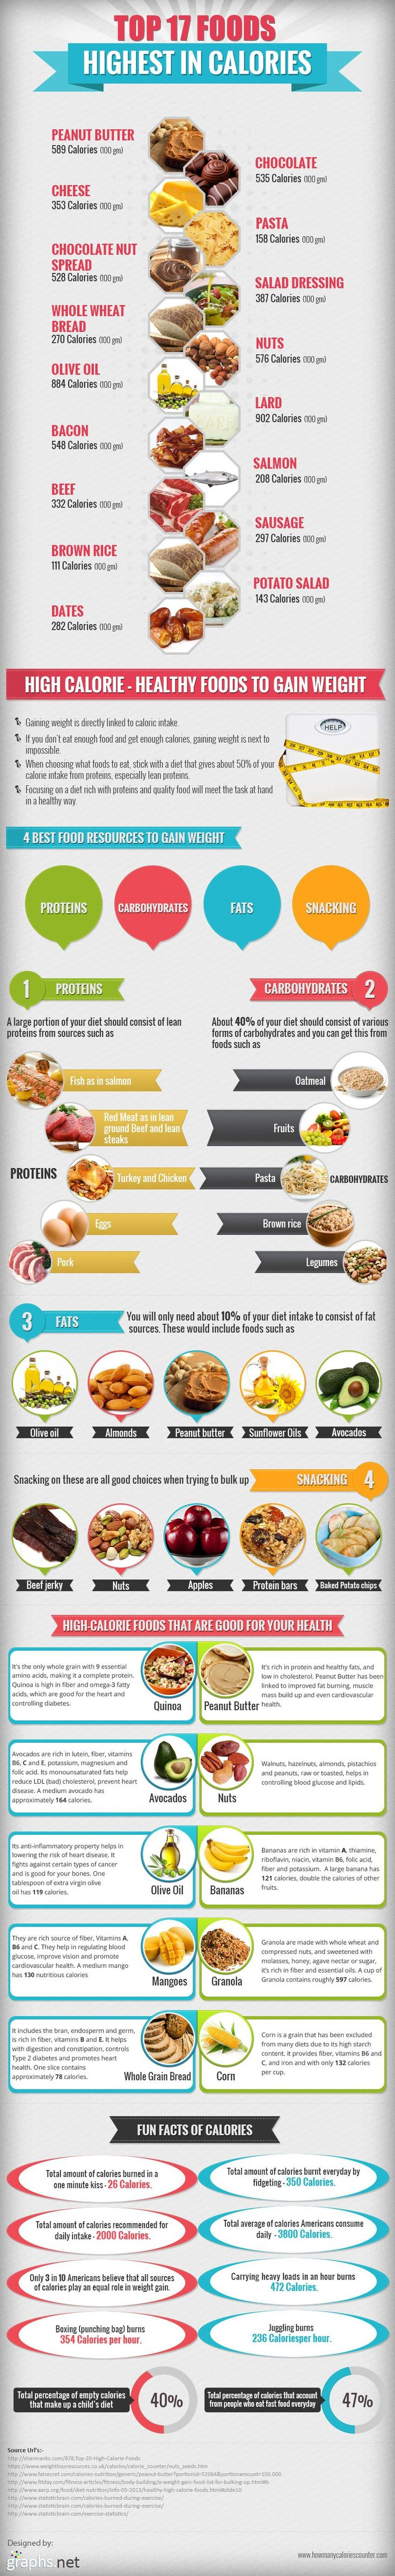 Top 17 Foods Highest in Calories (infographic)-Need more calories